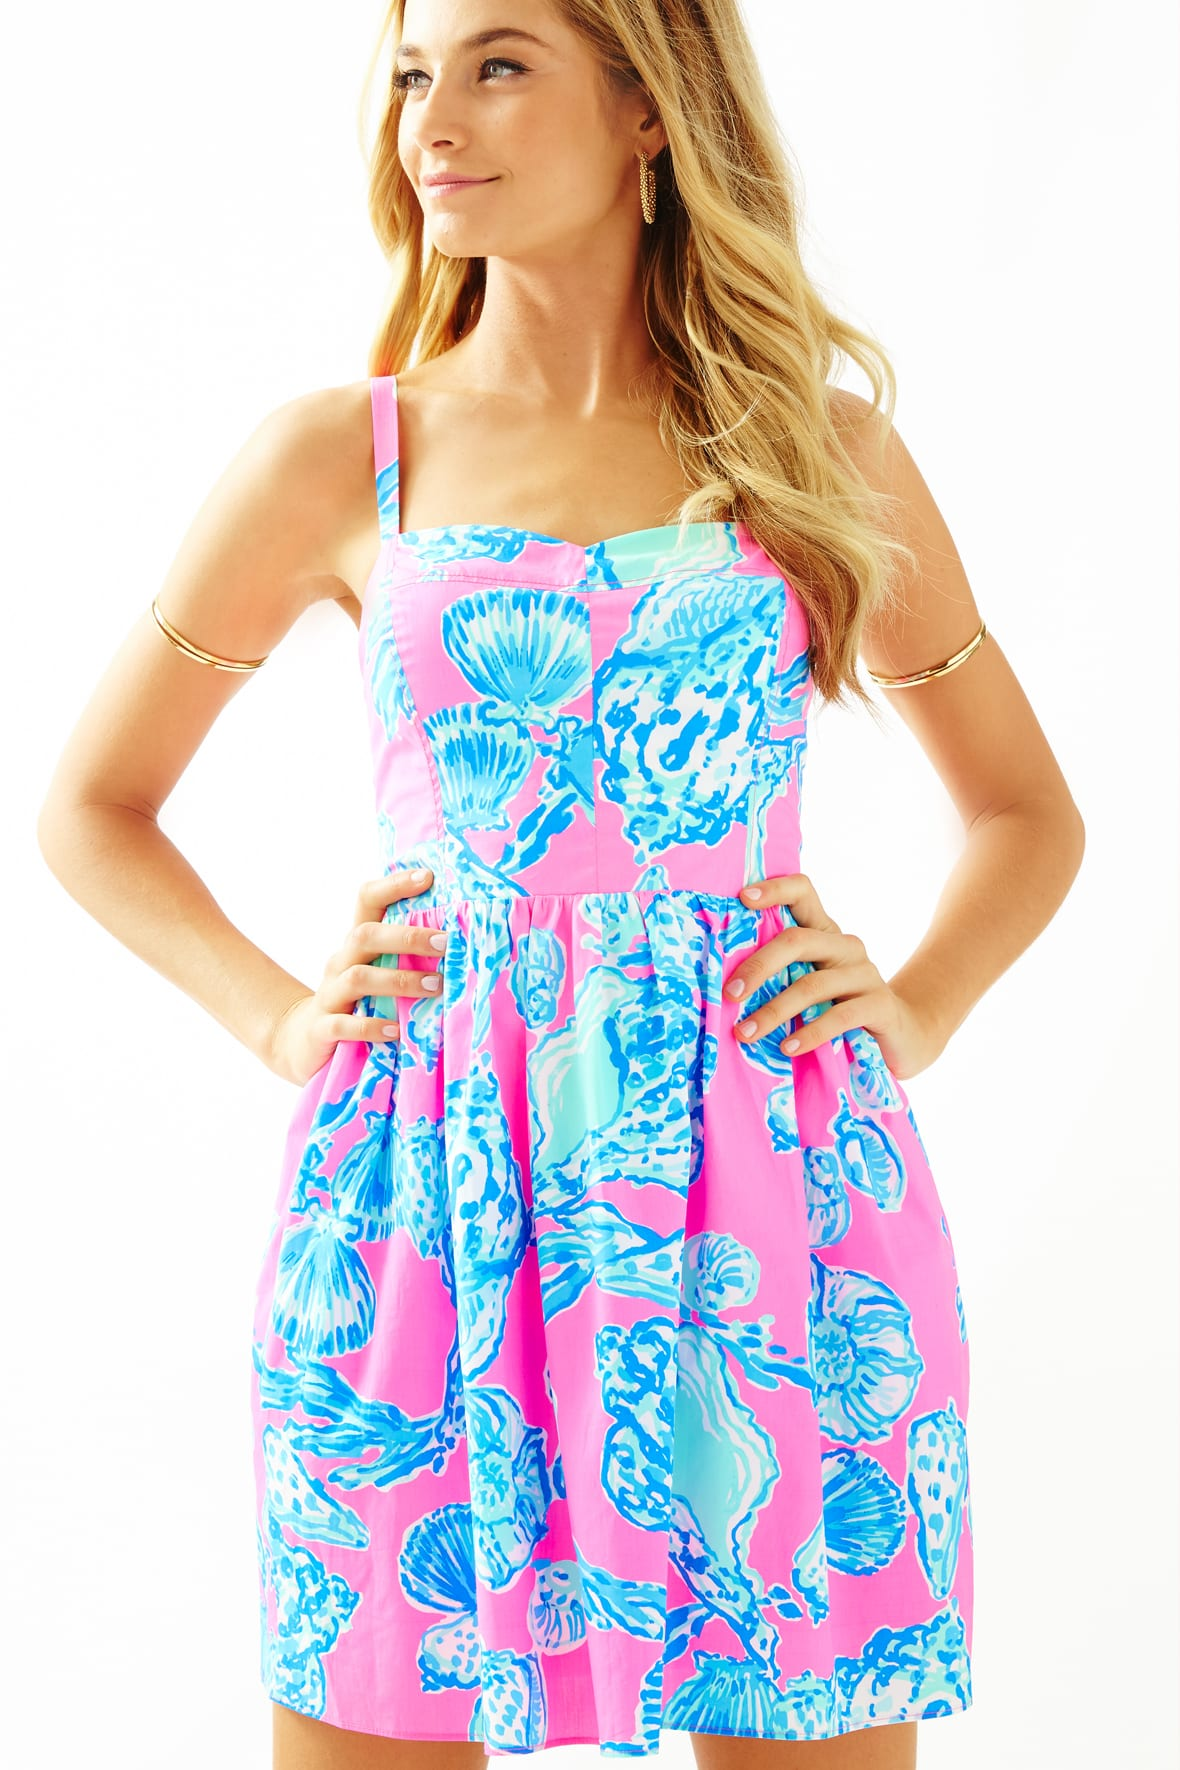 84dba33bfaa14 Why We Love Lilly Pulitzer For Summer - Poor Little It Girl